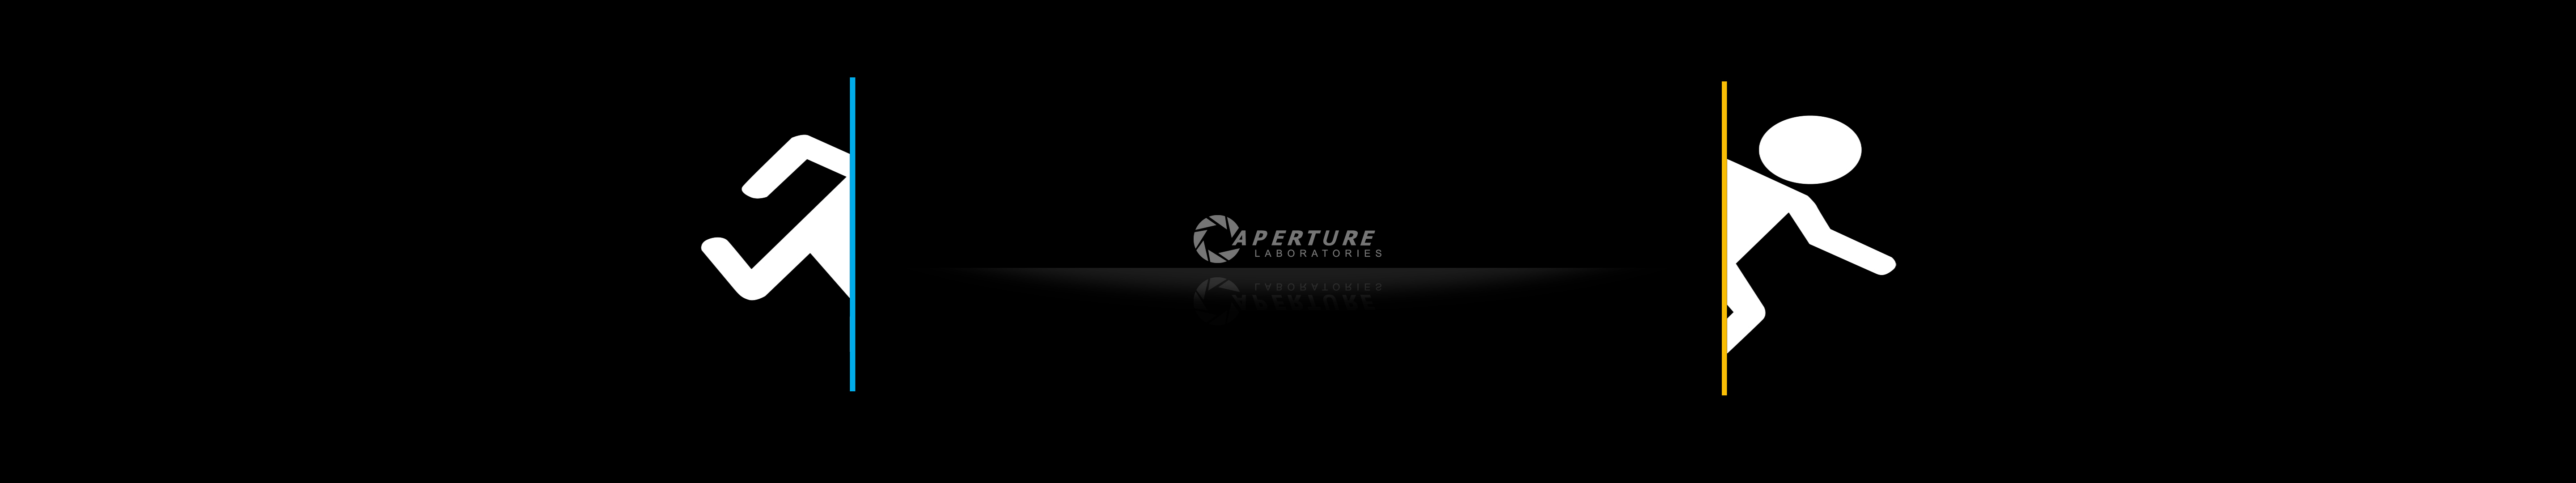 Portal 5760x1080 Wallpapers Wallpapers Pictures Piccit 5760x1080